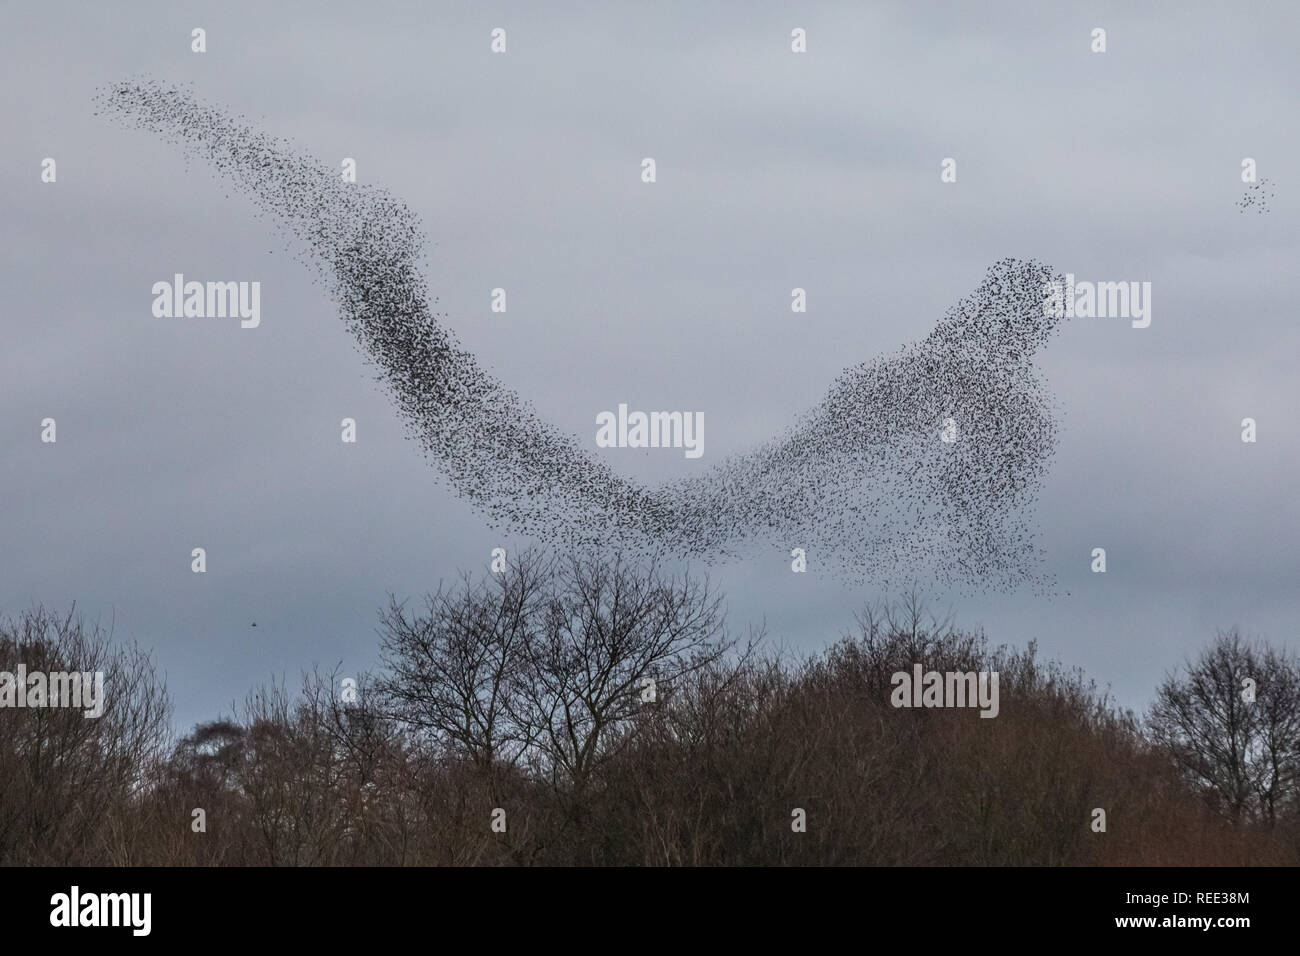 Evening starling murmuration over Avalon marshes wetlands nature reserve. - Stock Image